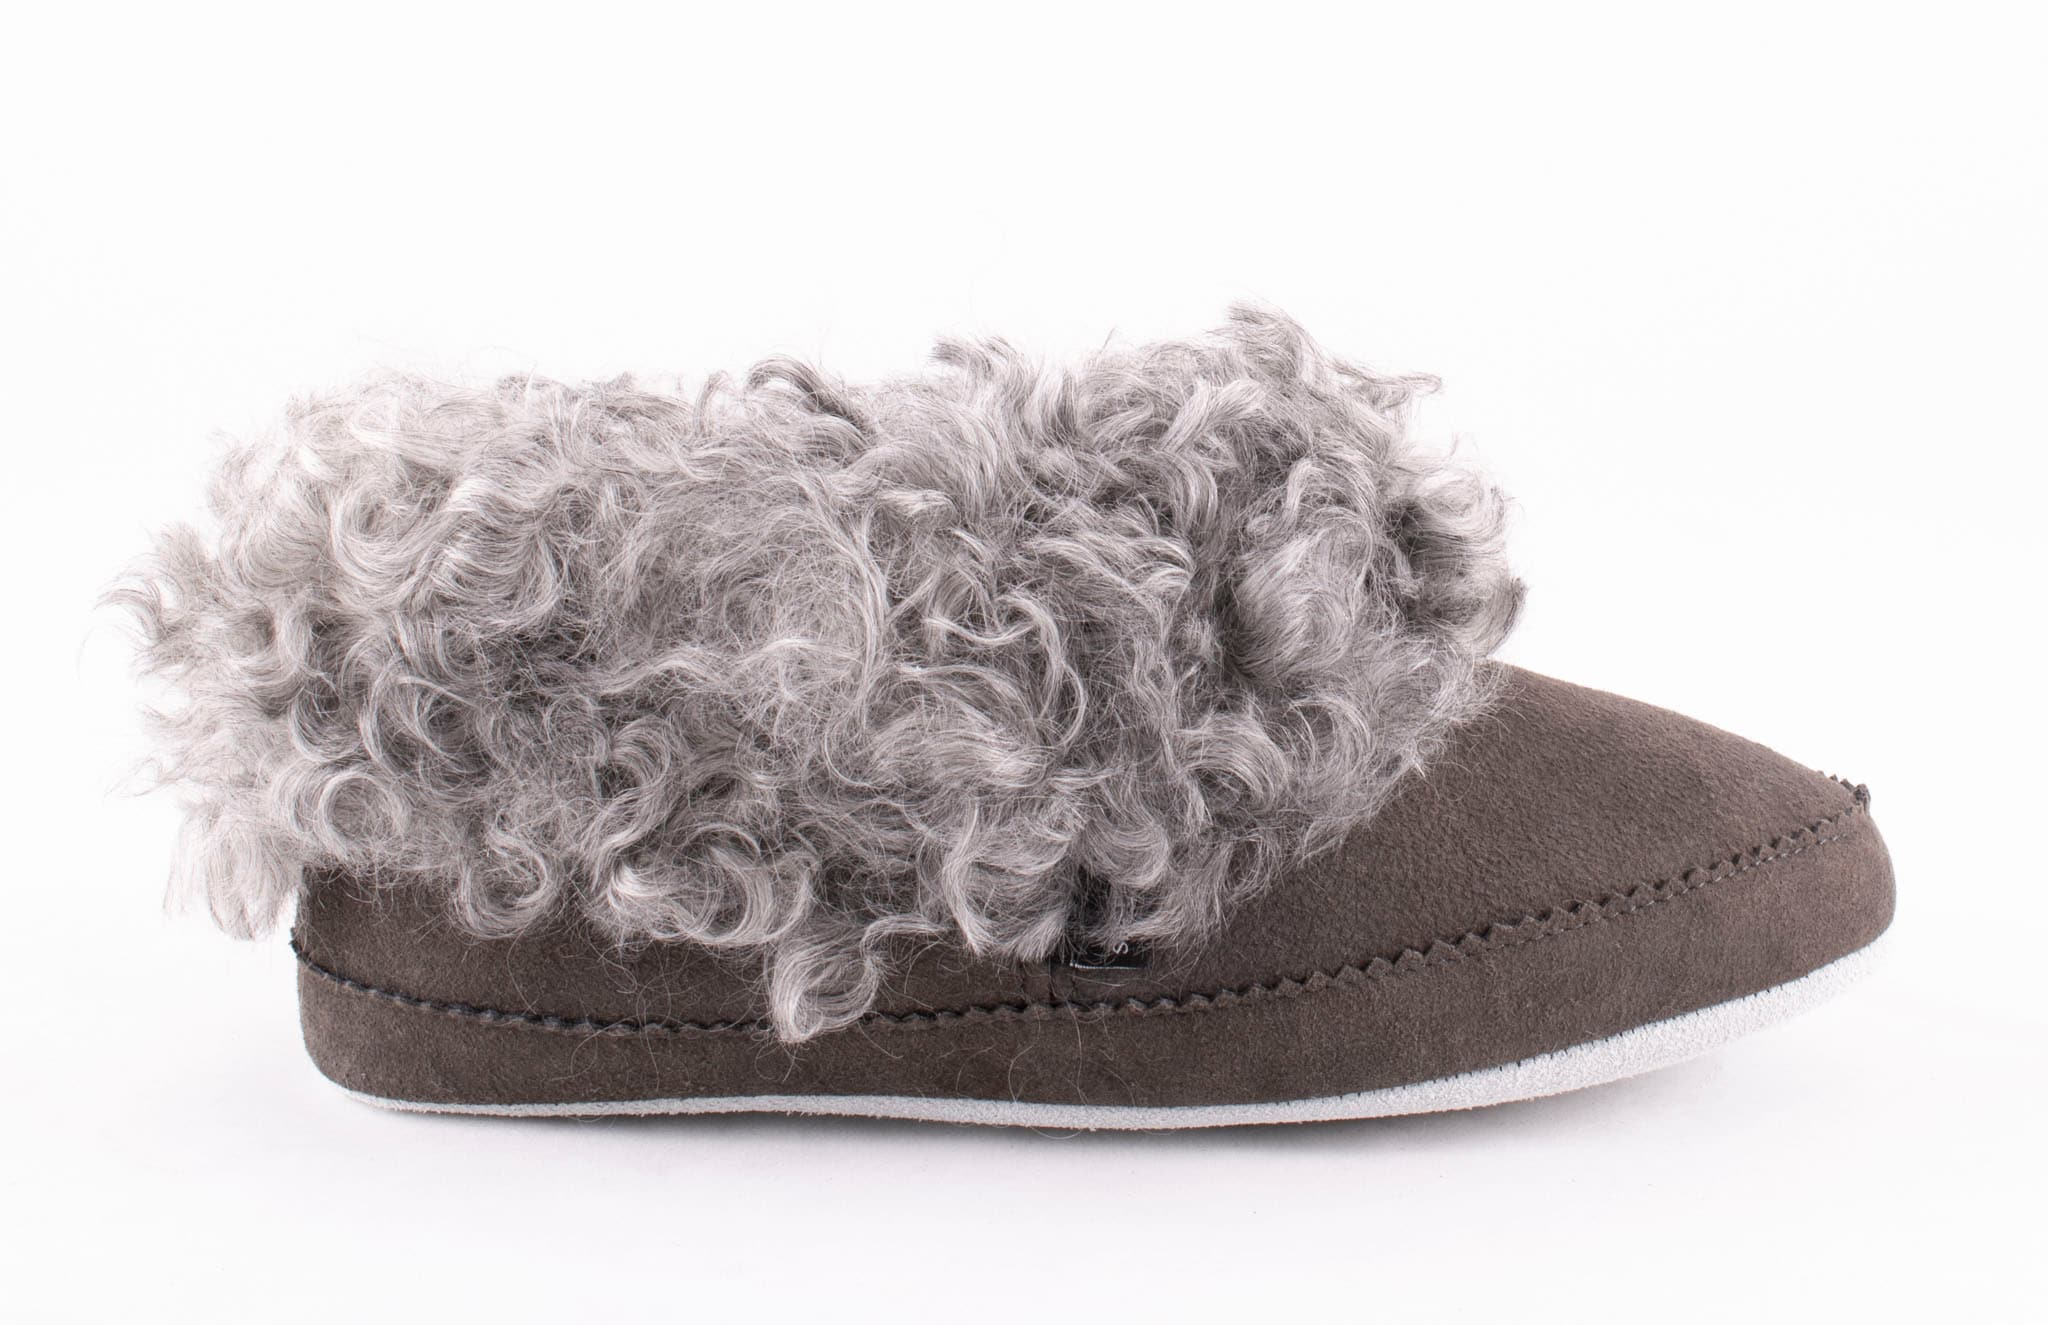 Svea, sheepskin slippers